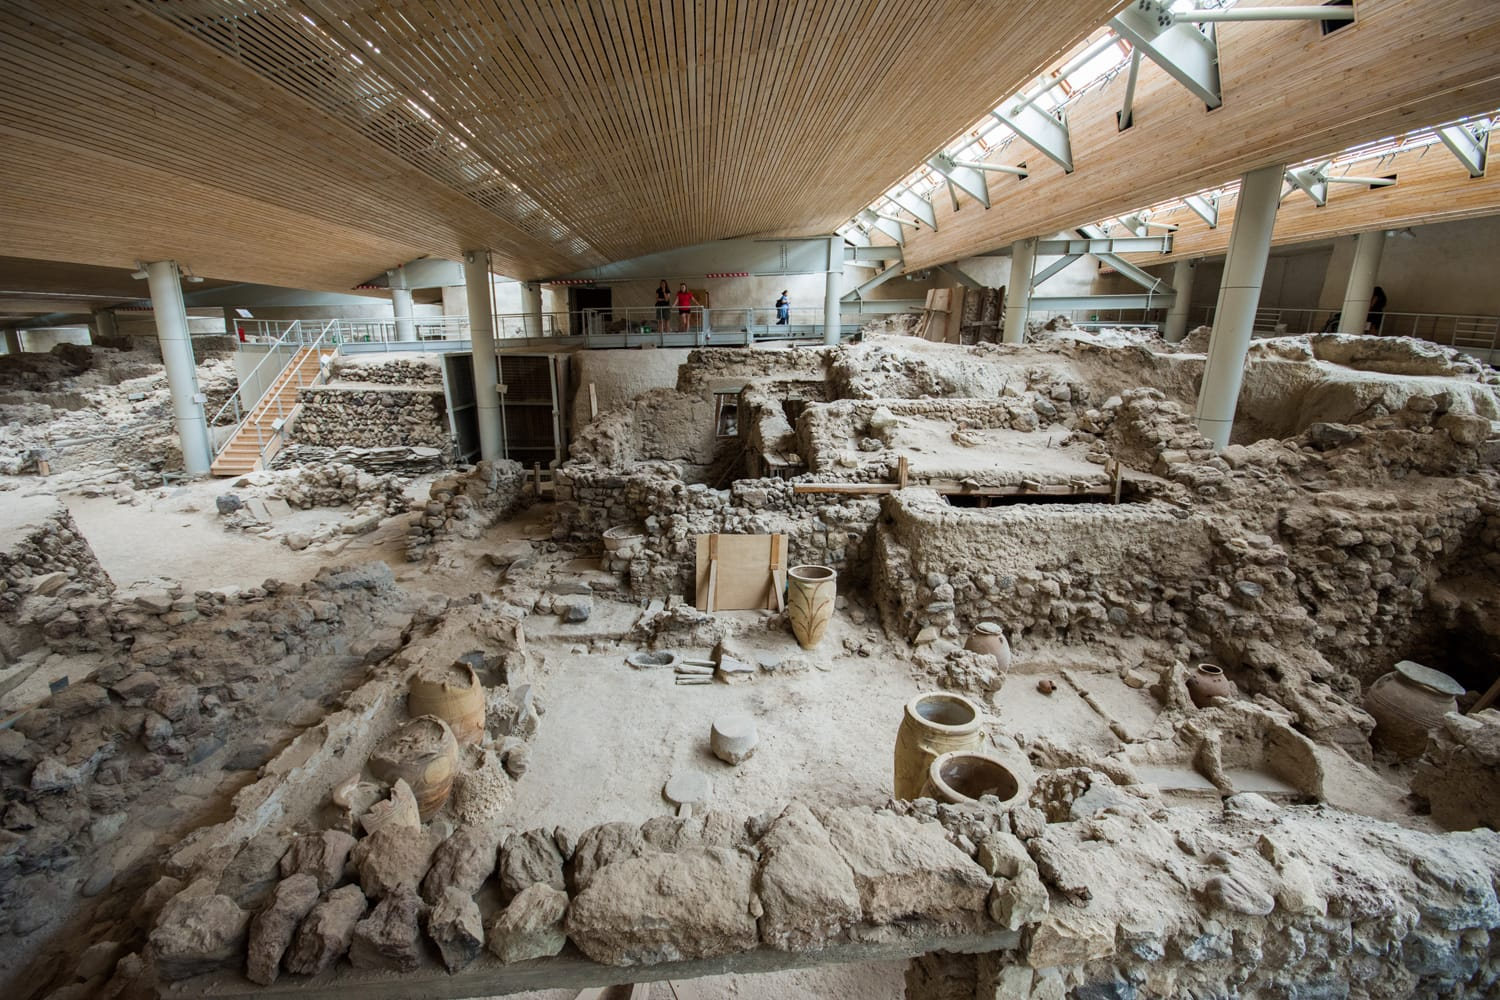 Akrotiri is an archaeological site from the Minoan Bronze Age on the Greek island of Santorini, Greece